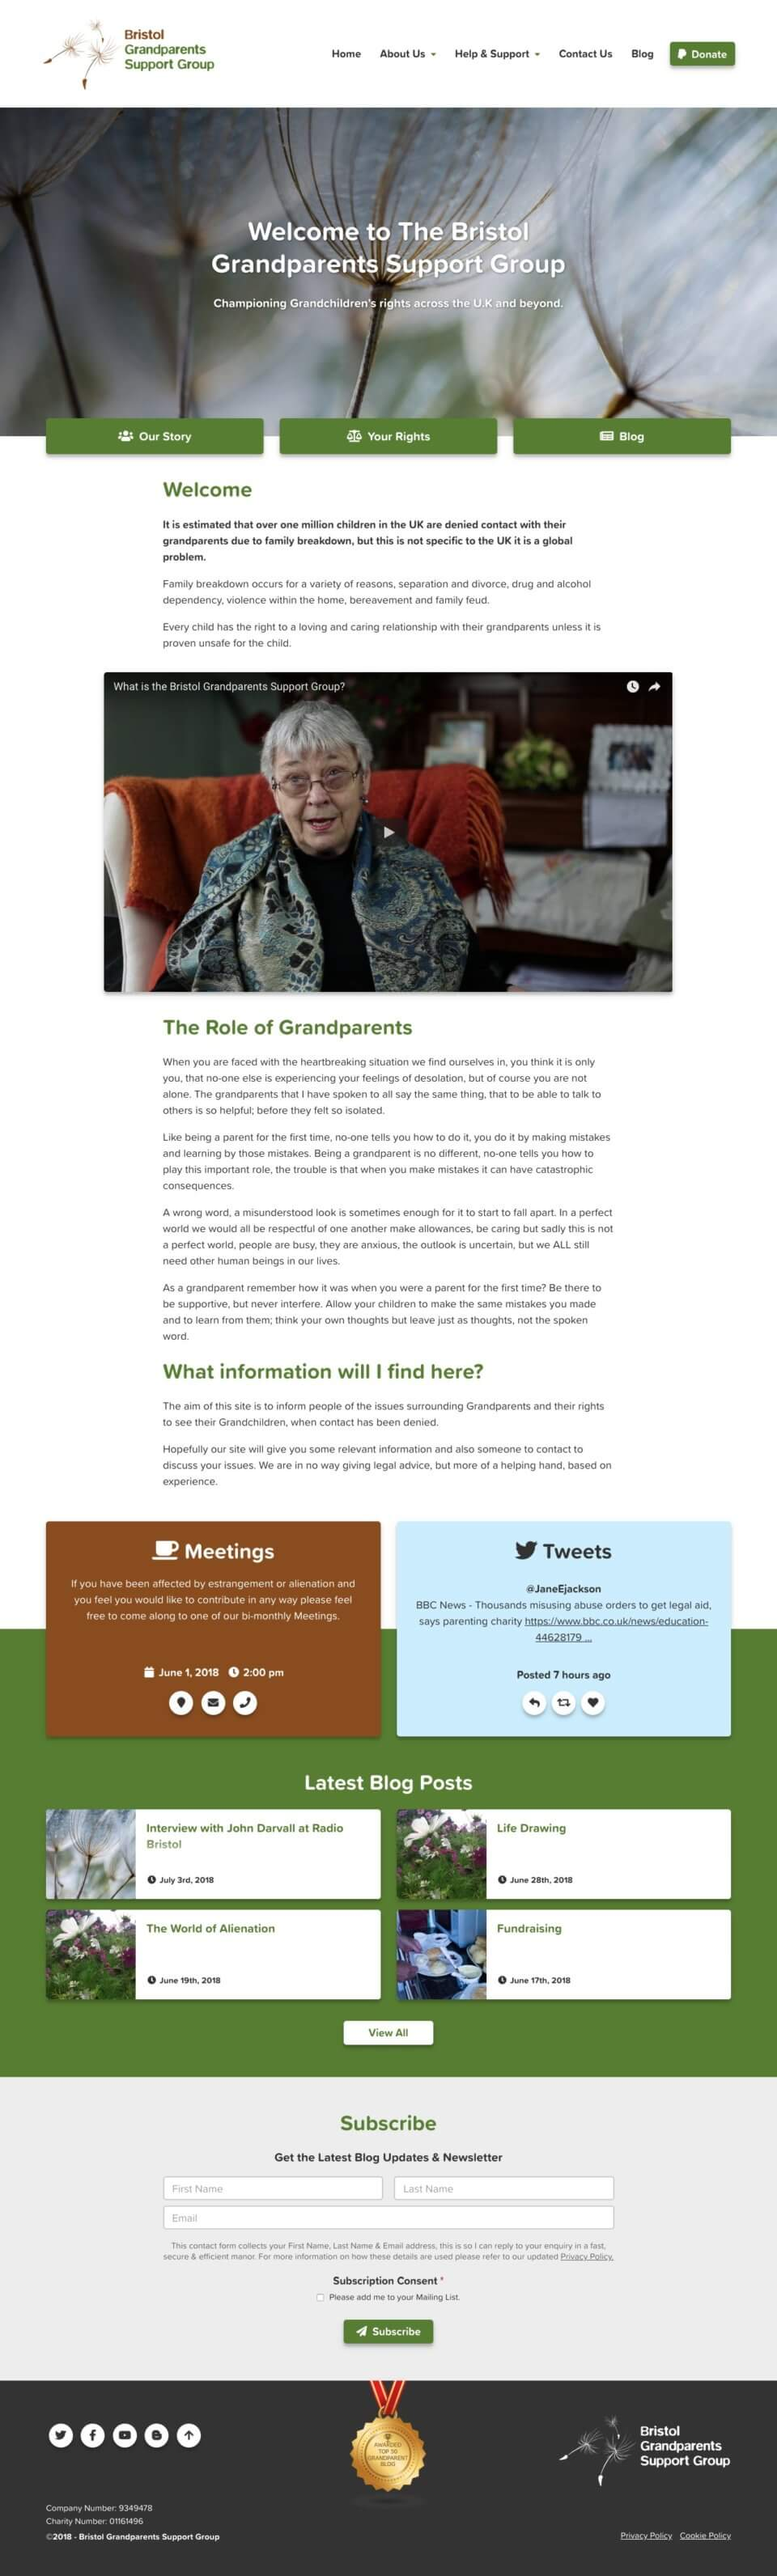 Bristol Grandparents Support Group - Home Page